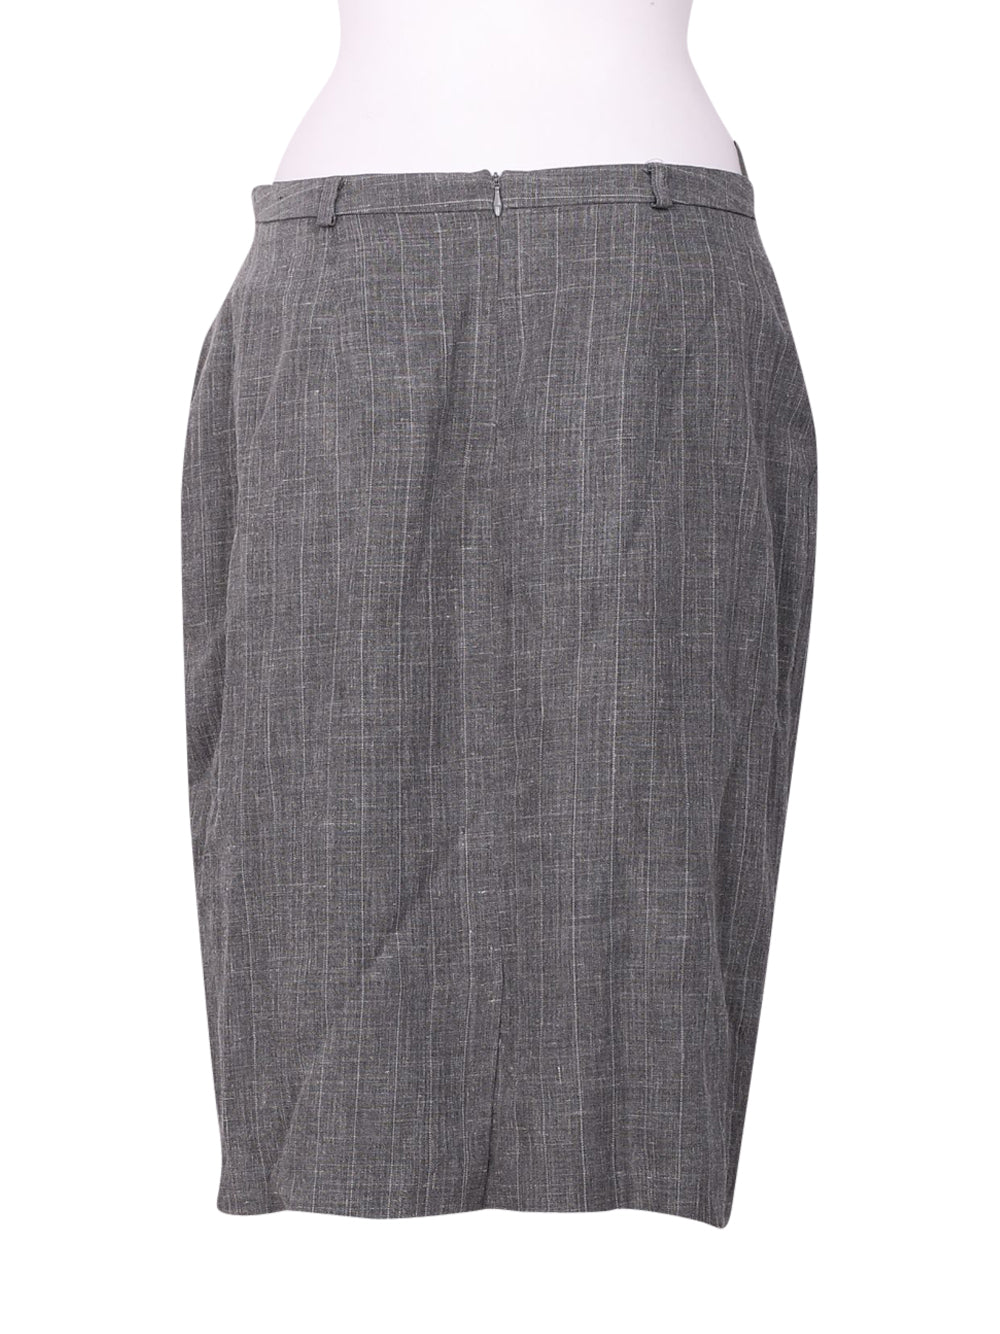 Back photo of Preloved Max Mara Grey Woman's skirt - size 16/XXL